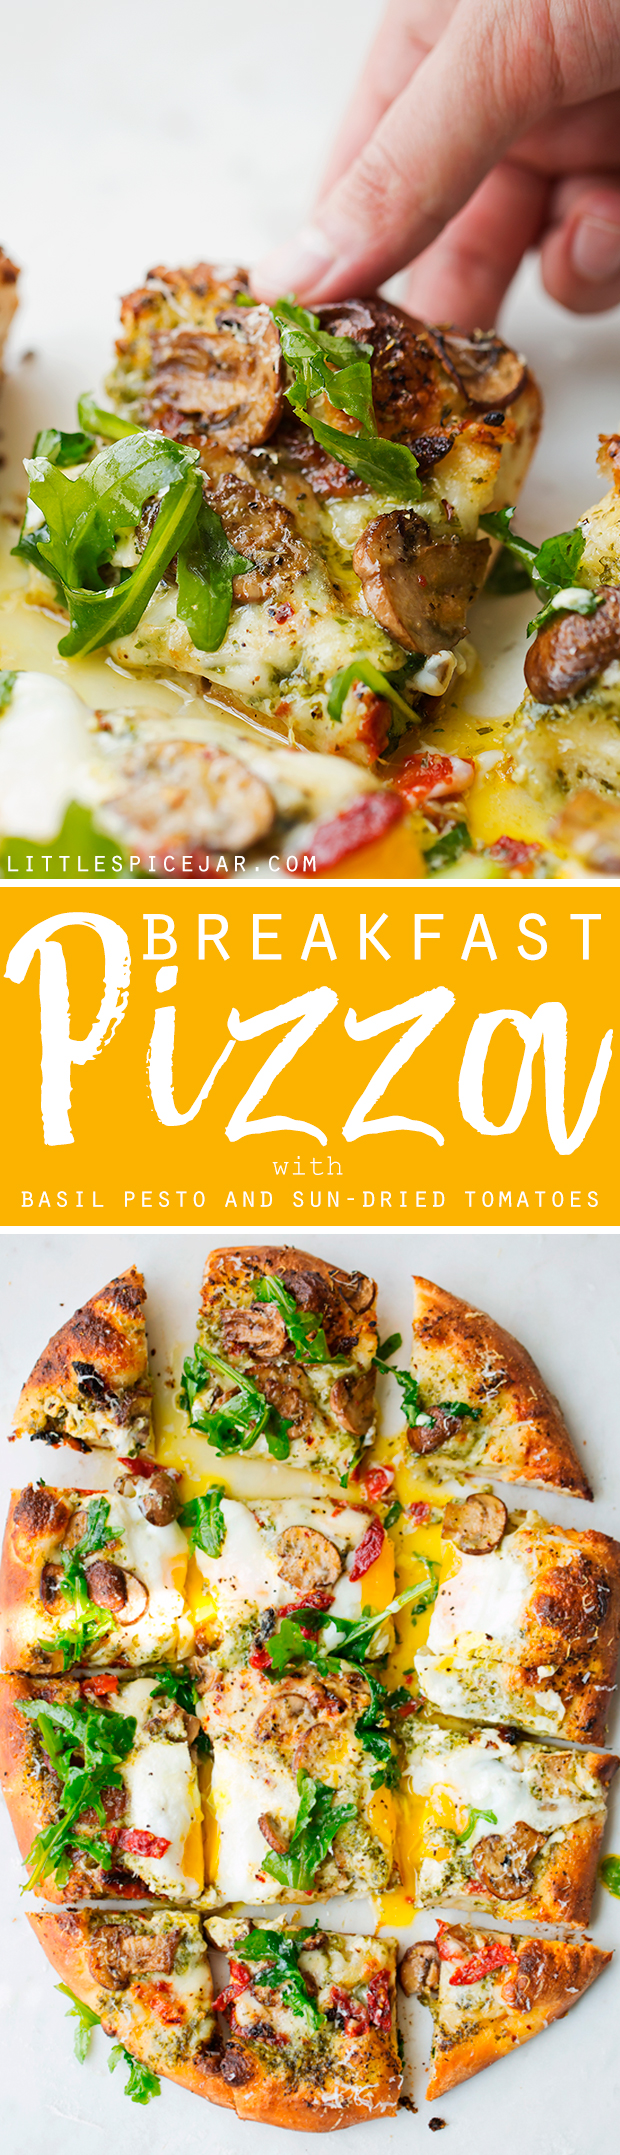 Breakfast Pizza with Basil Pesto and Sun-Dried Tomatoes - a simple breakfast pizza that's topped with fresh eggs and it's so good! #breakfast #breakfastpizza #pizza #pizzanight | Littlespicejar.com